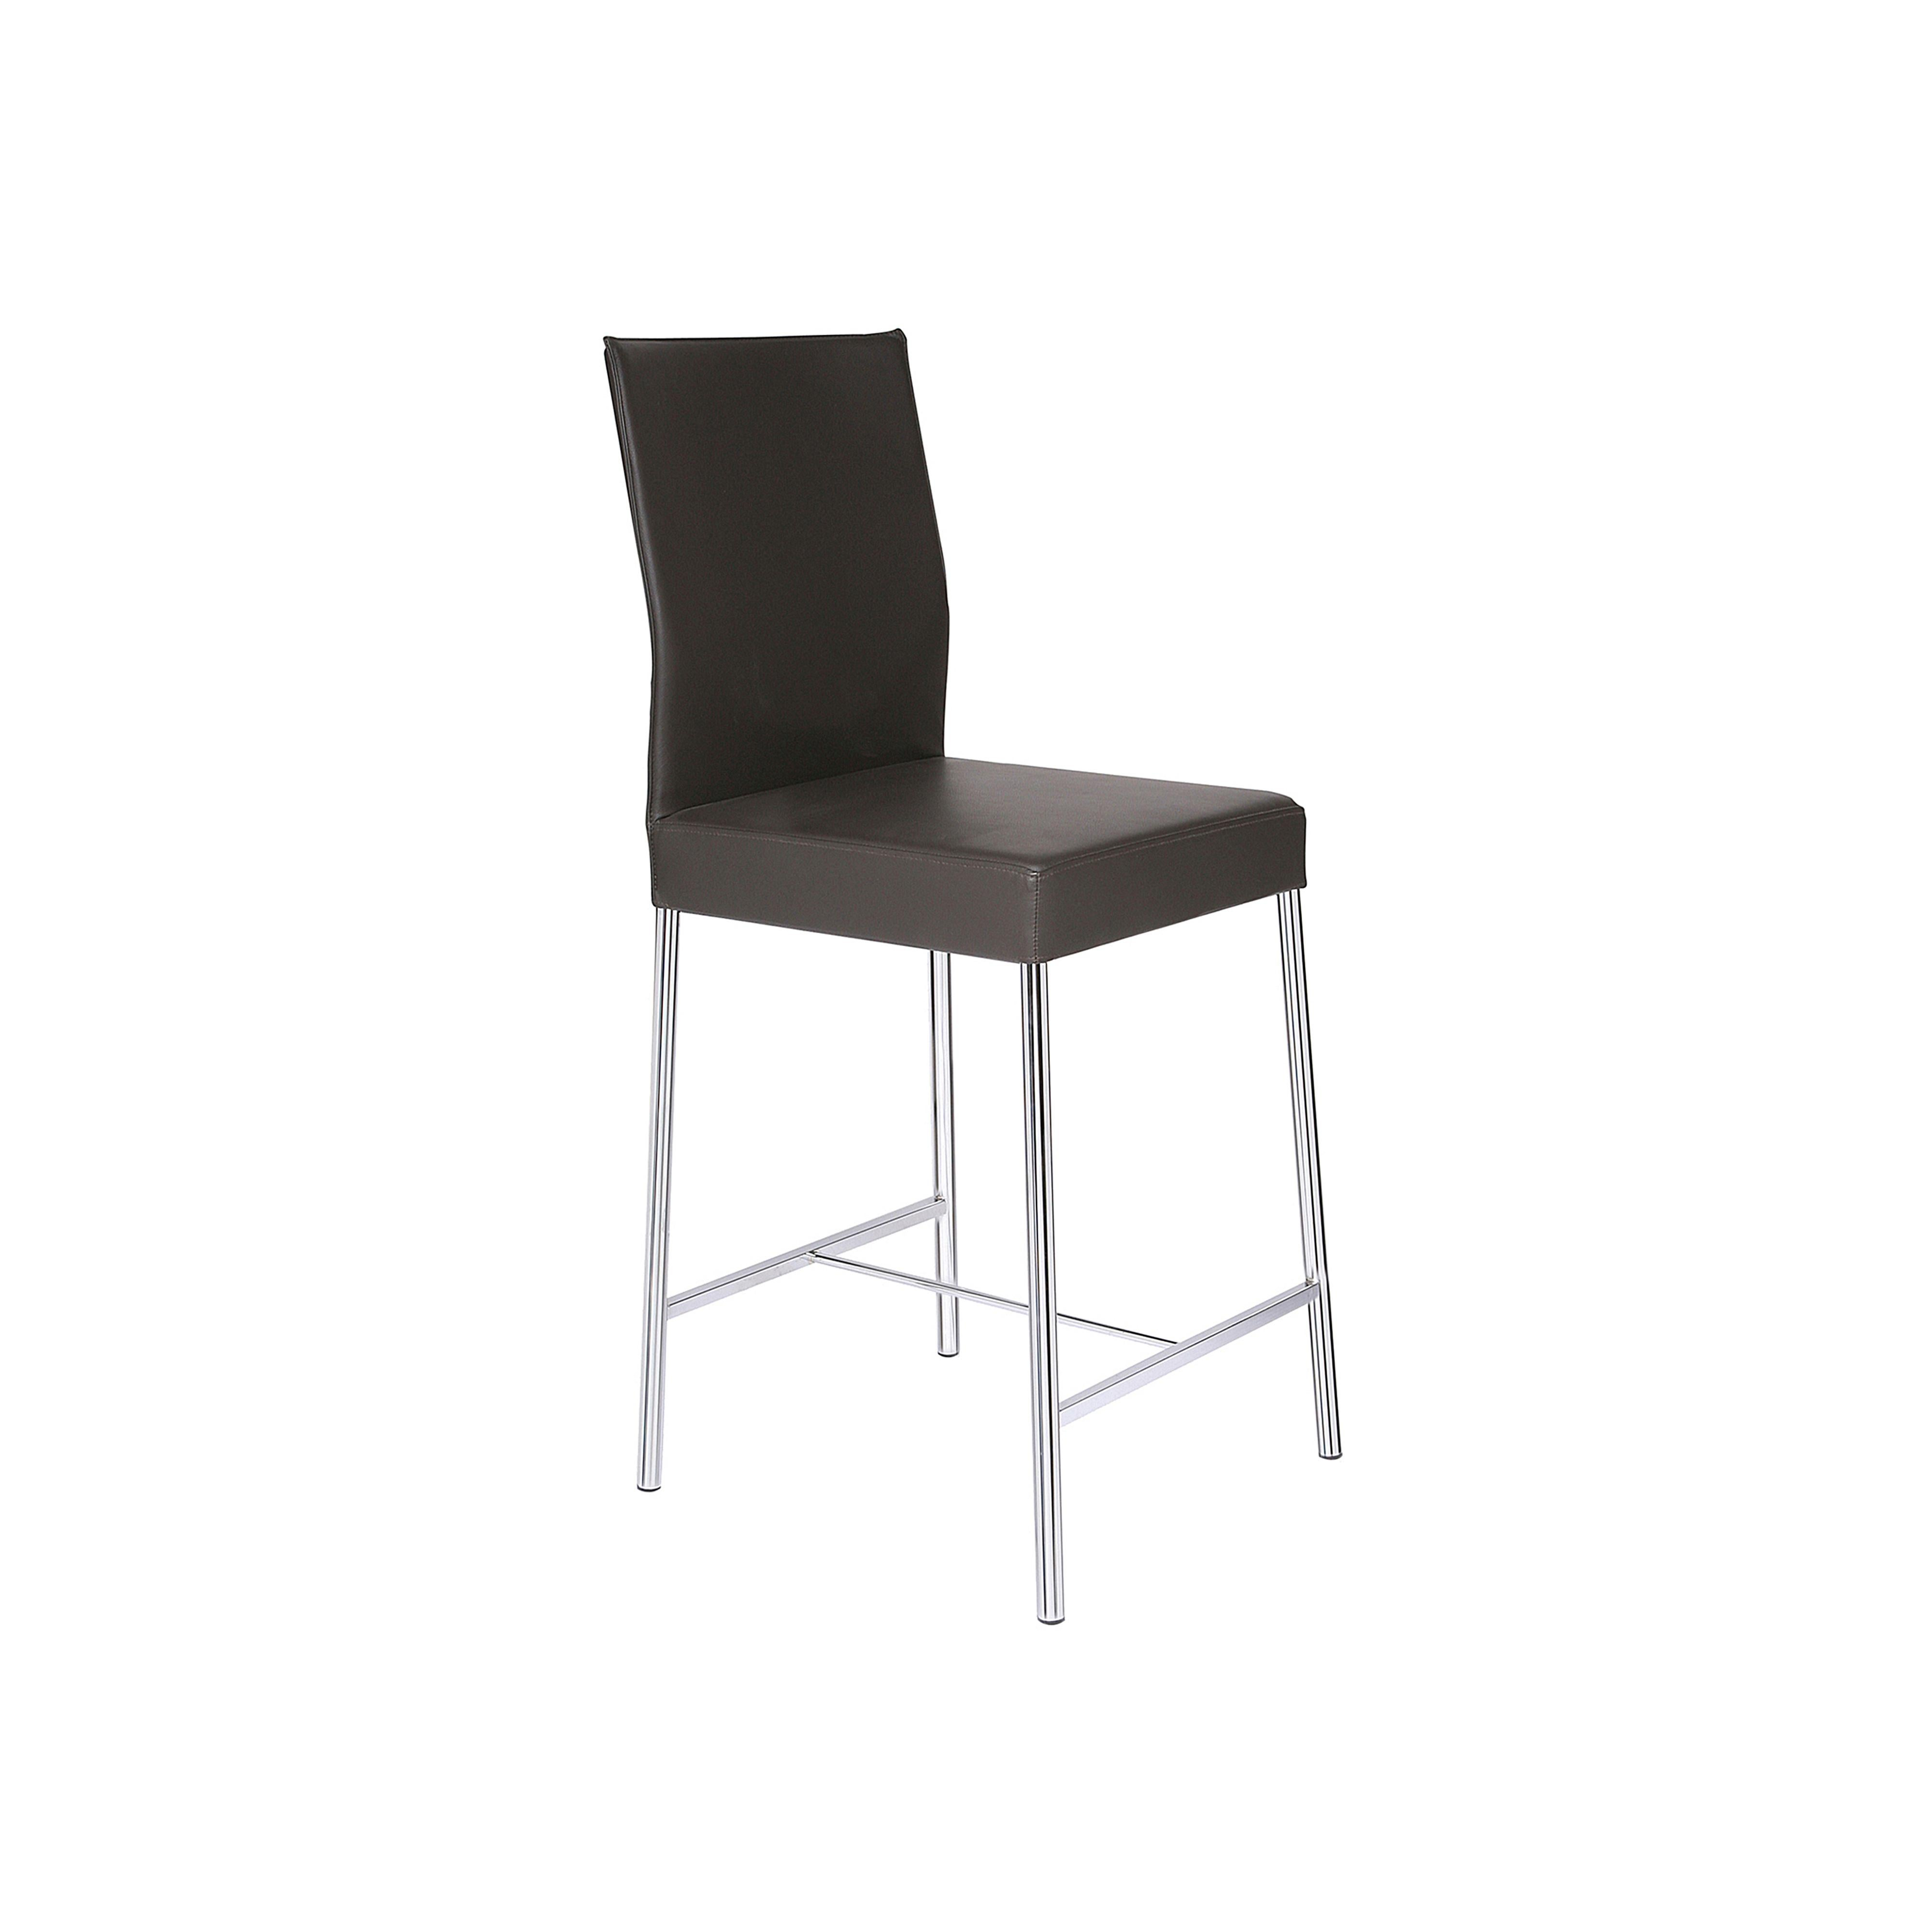 GLOOH Counter Stool in Brown Leather by KFF